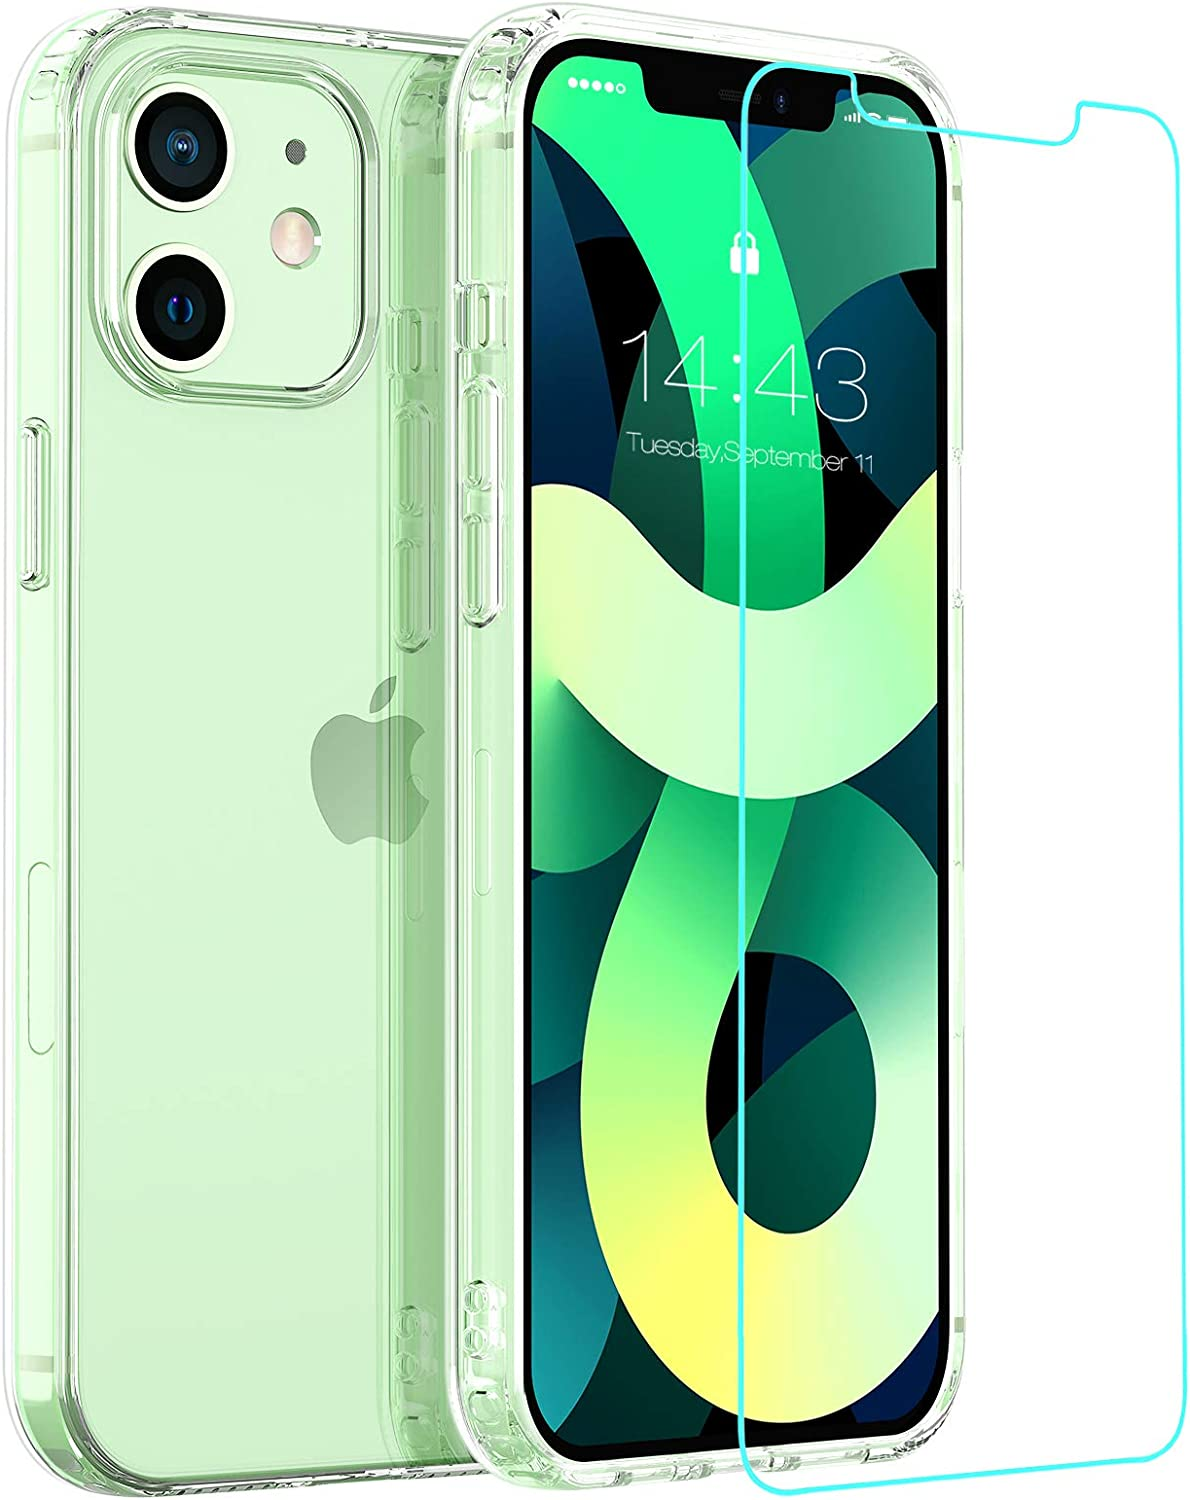 zelaxy Case Compatble with iPhone 12 Mini with Screen Protector, Anti- Yellow Hard PC Back and Shock-Absorbing Soft TPU Bumper Diamonds Clear Transparent Case for iPhone 12 Mini 5.4 inch(Clear)